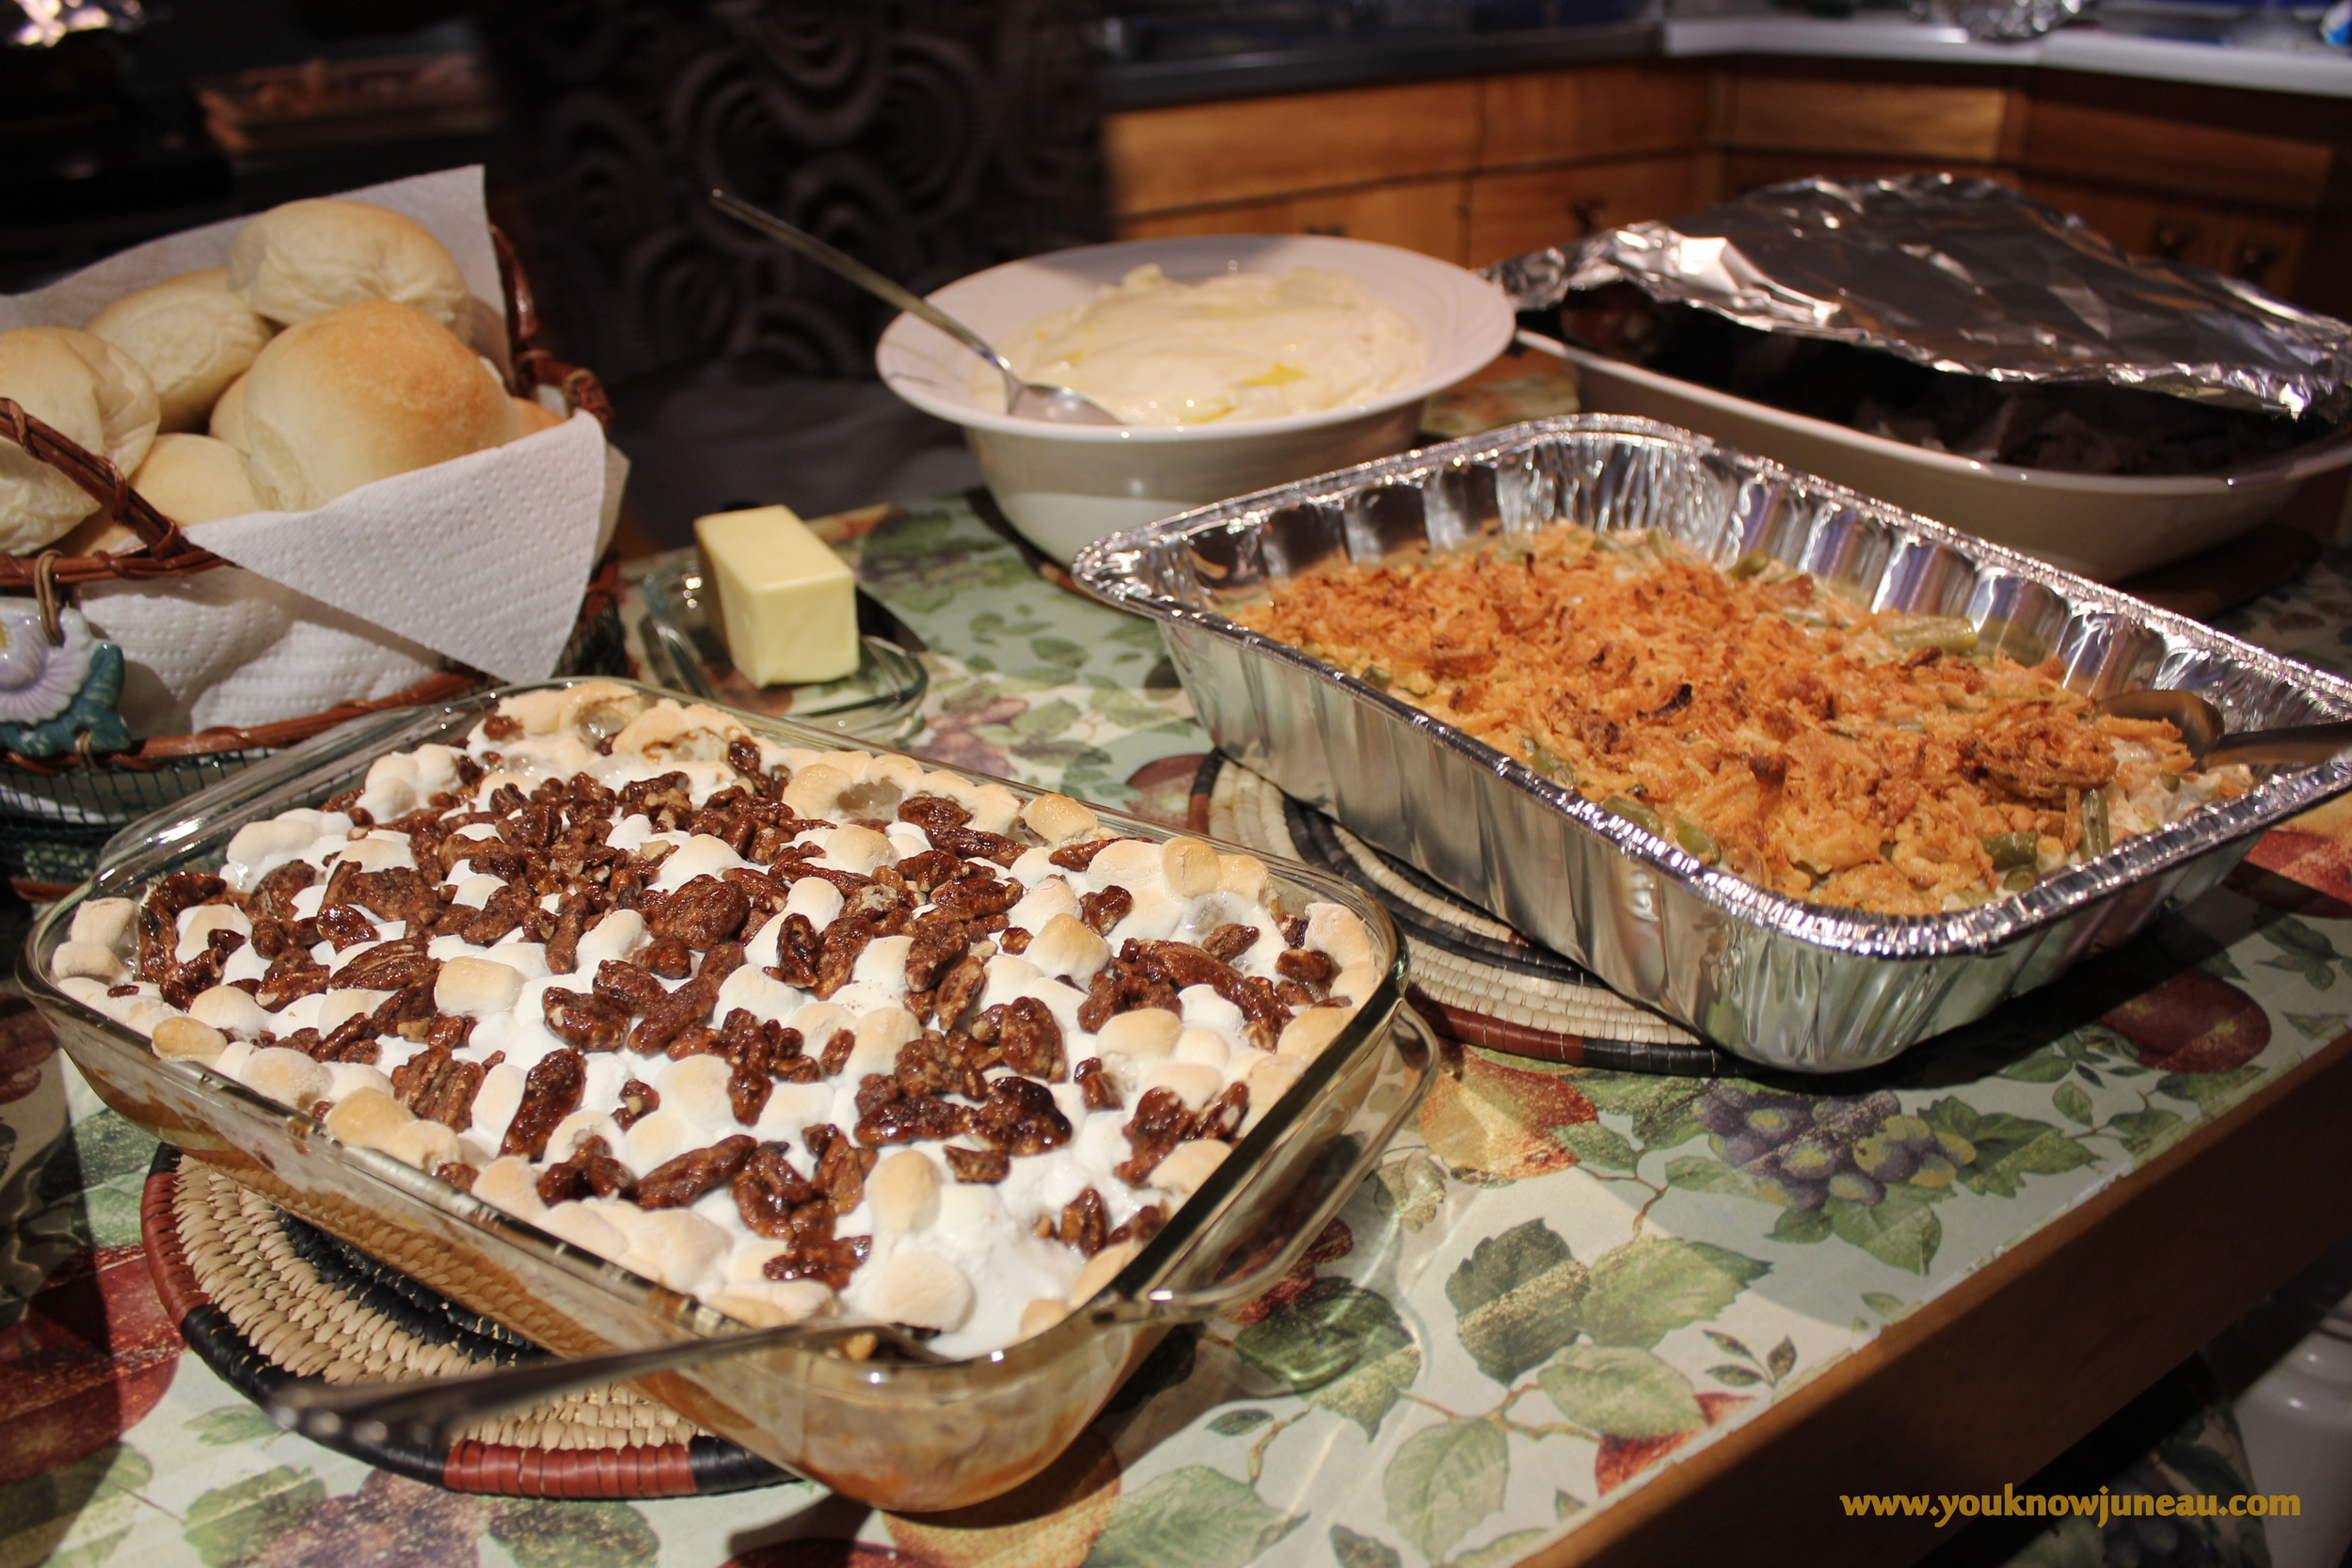 Southern Sweet Potato Casserole and Classic Green Bean Casserole - Two Southern Staples!